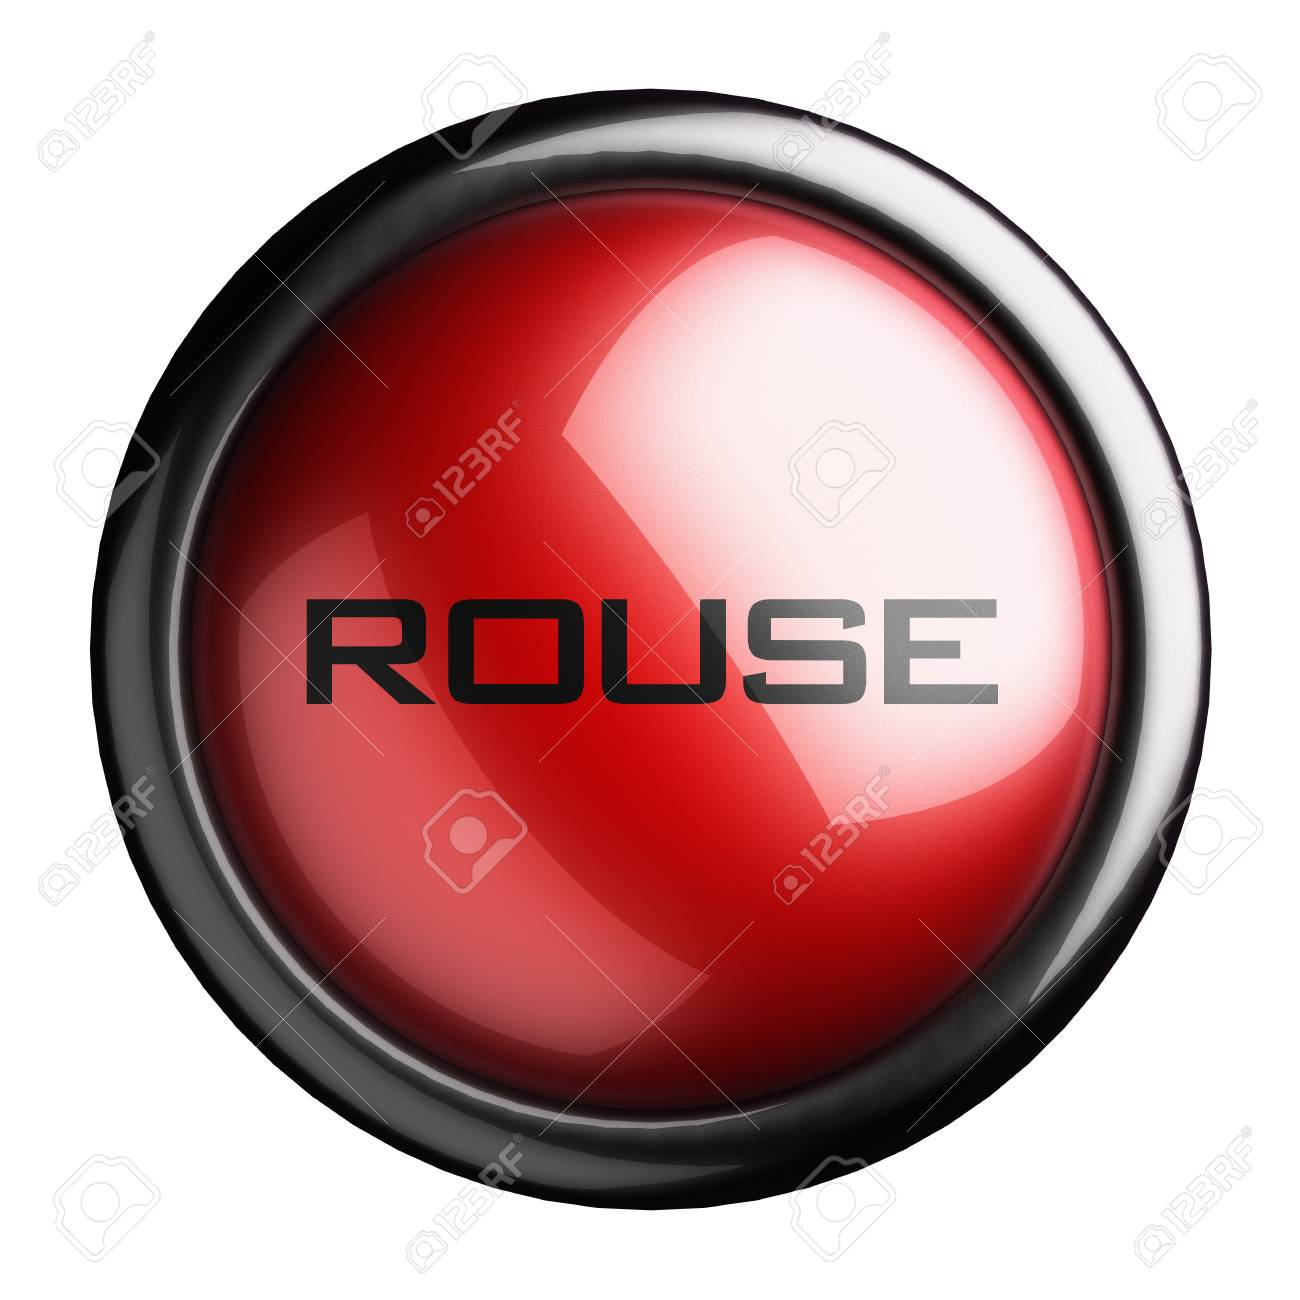 Word on the button Stock Photo - 15617441